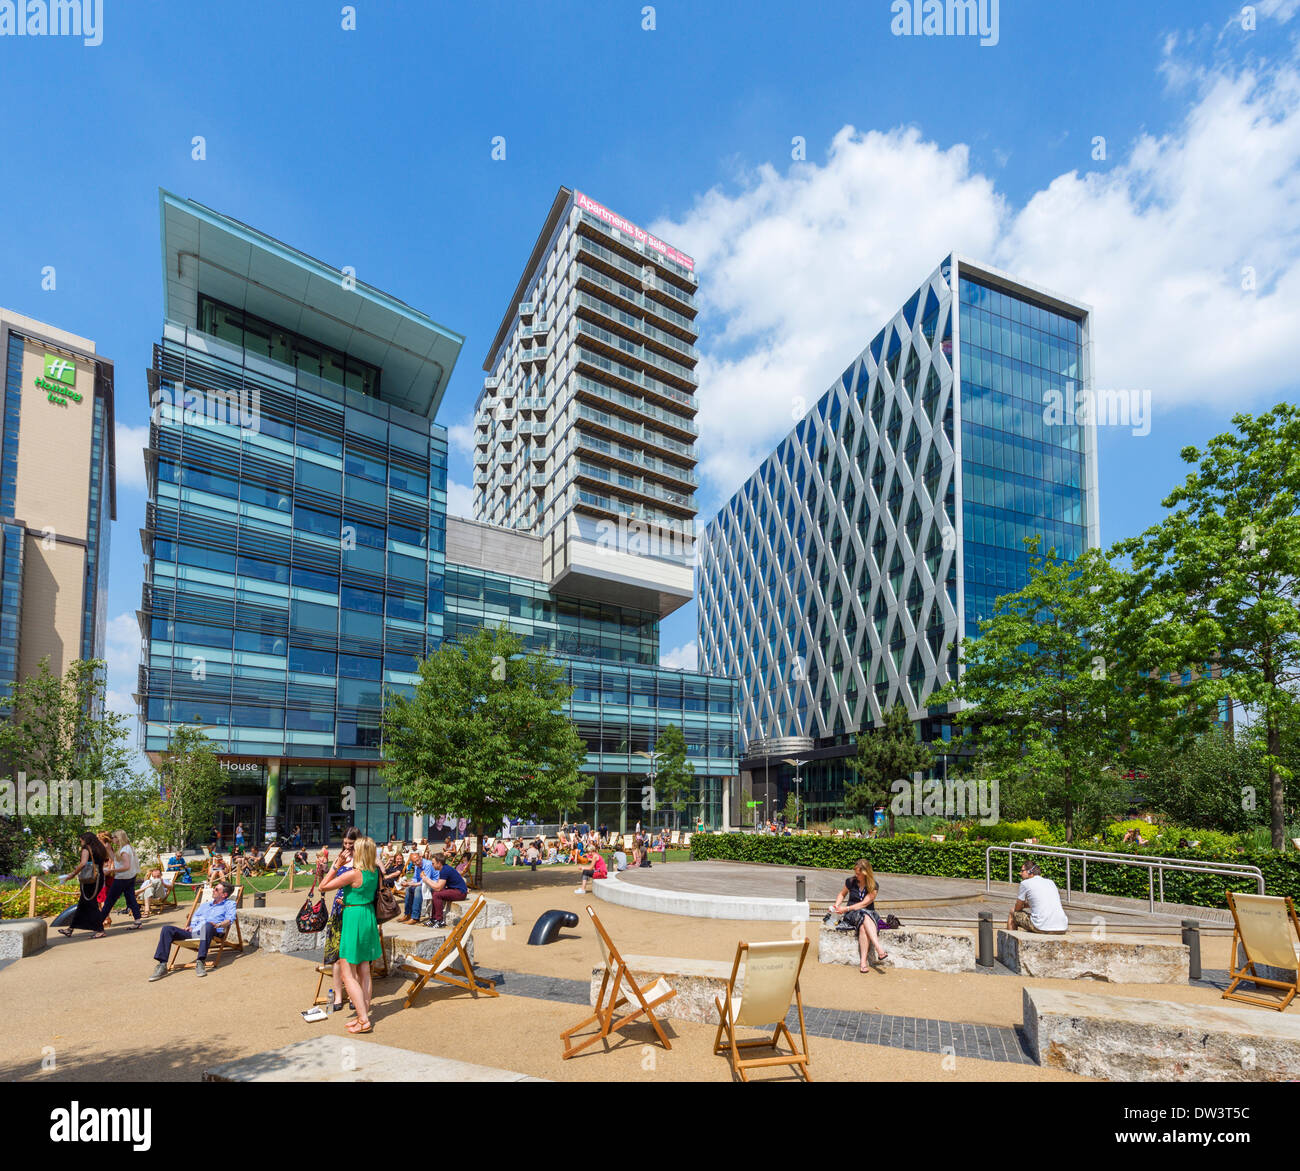 People having lunch outside apartments and offices near the BBC studios in MediaCityUK, Salford Quays, Manchester, England, UK - Stock Image